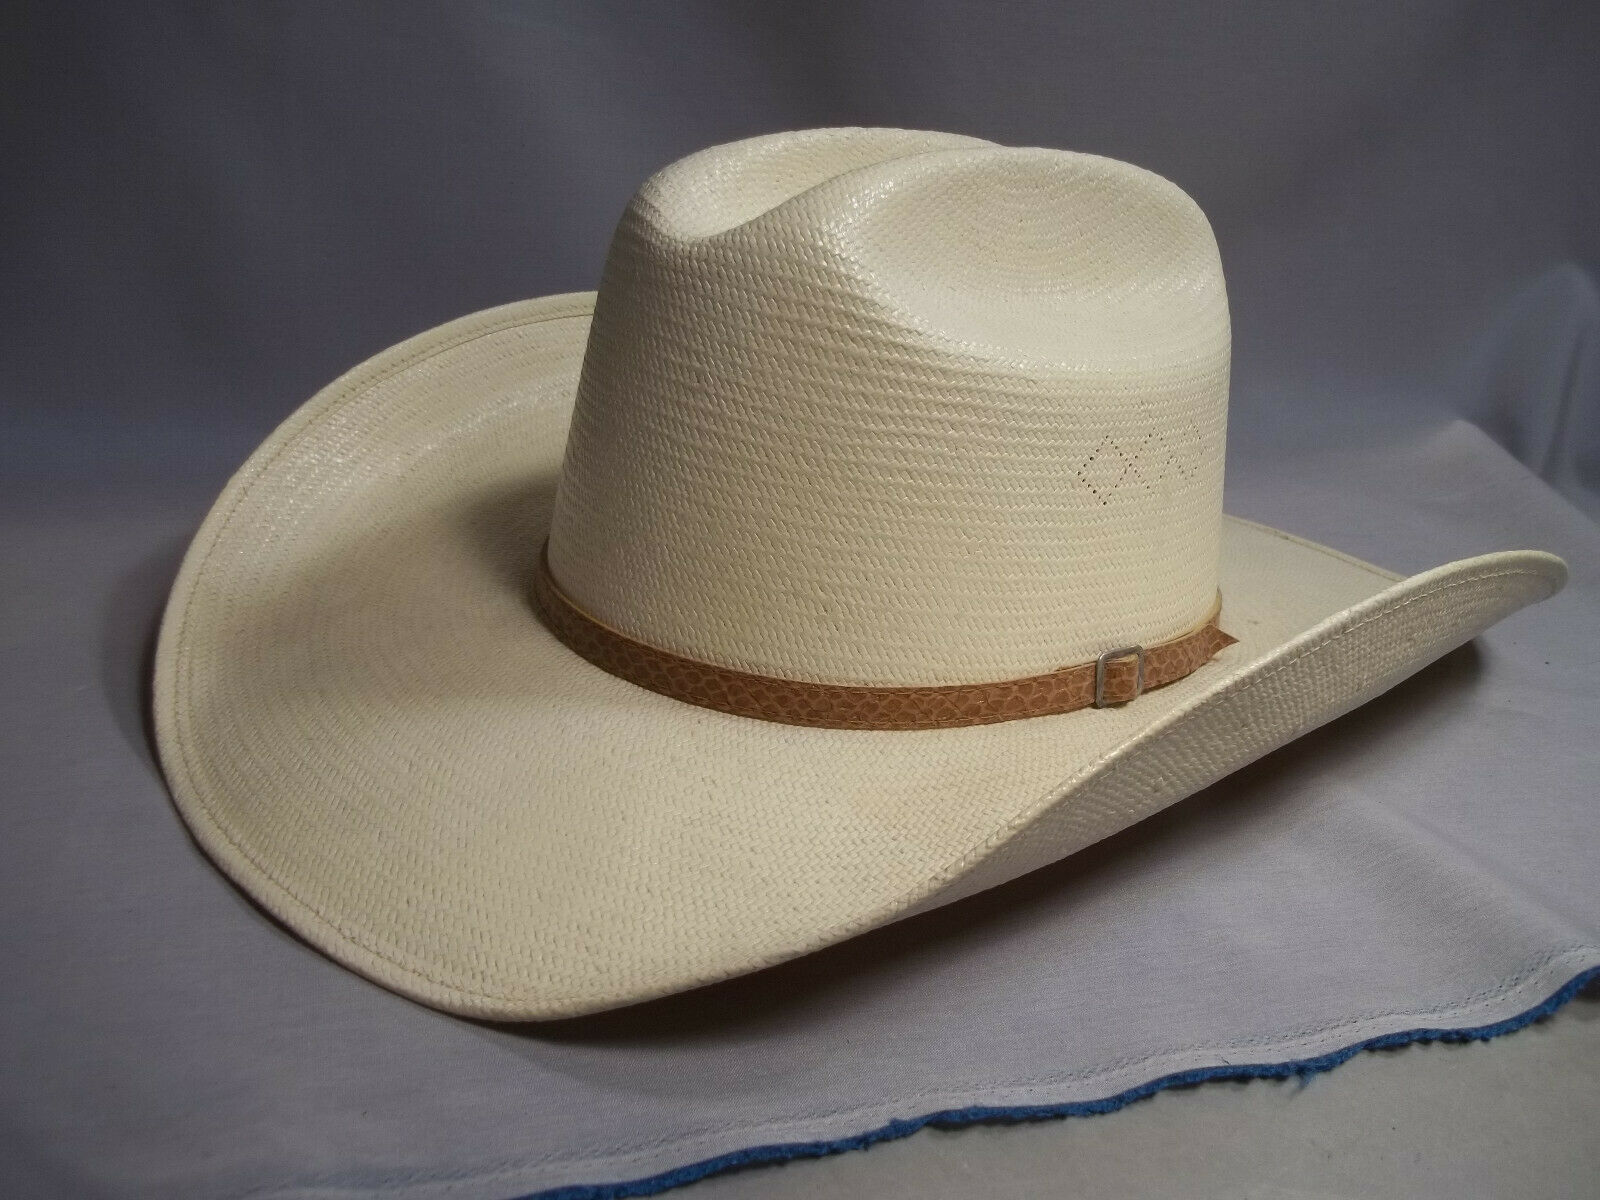 Turner Hat Company Western Panama     Cowboy Hat   Size 73 8 30X  hot sales